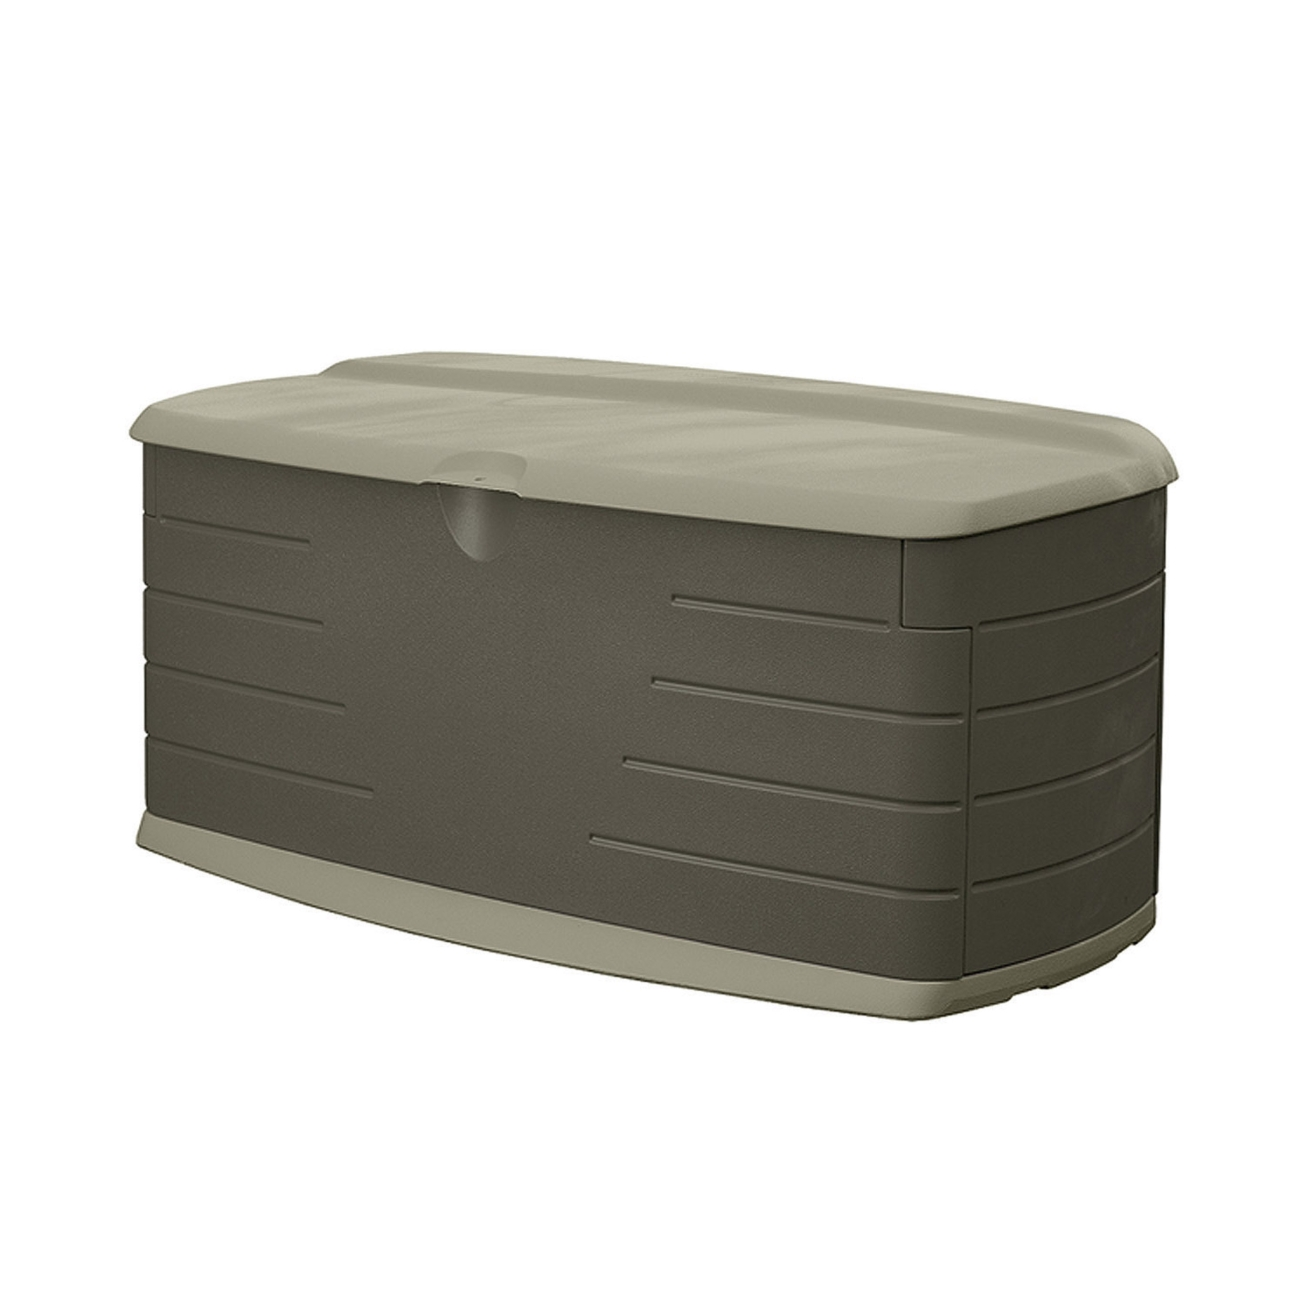 Rubbermaid Storage Sheds | Rubbermaid Storage | Utility Sheds